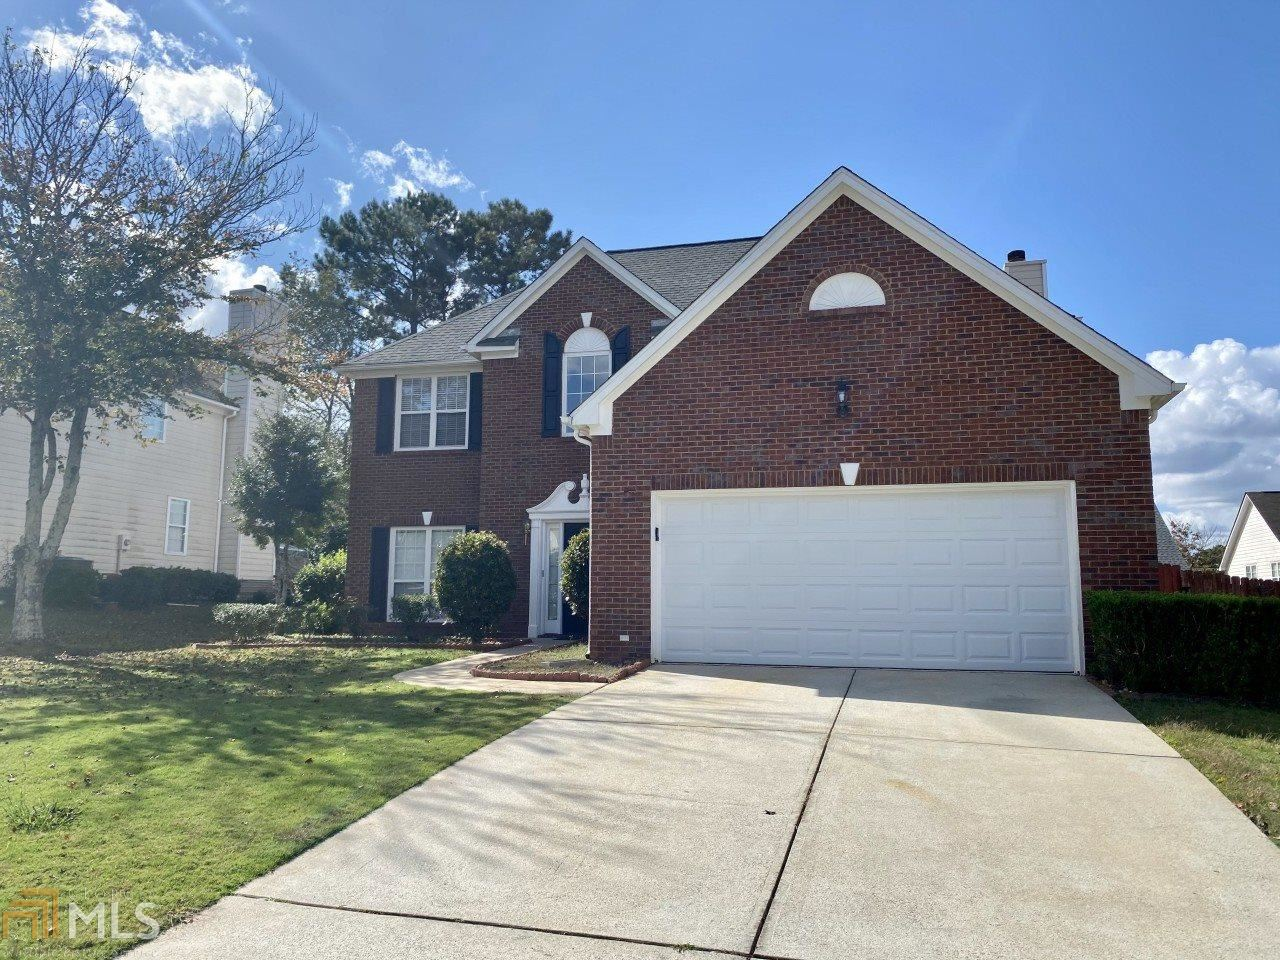 434 Sugar Gate Ct, Lawrenceville, GA 30044 - MLS#: 8878501